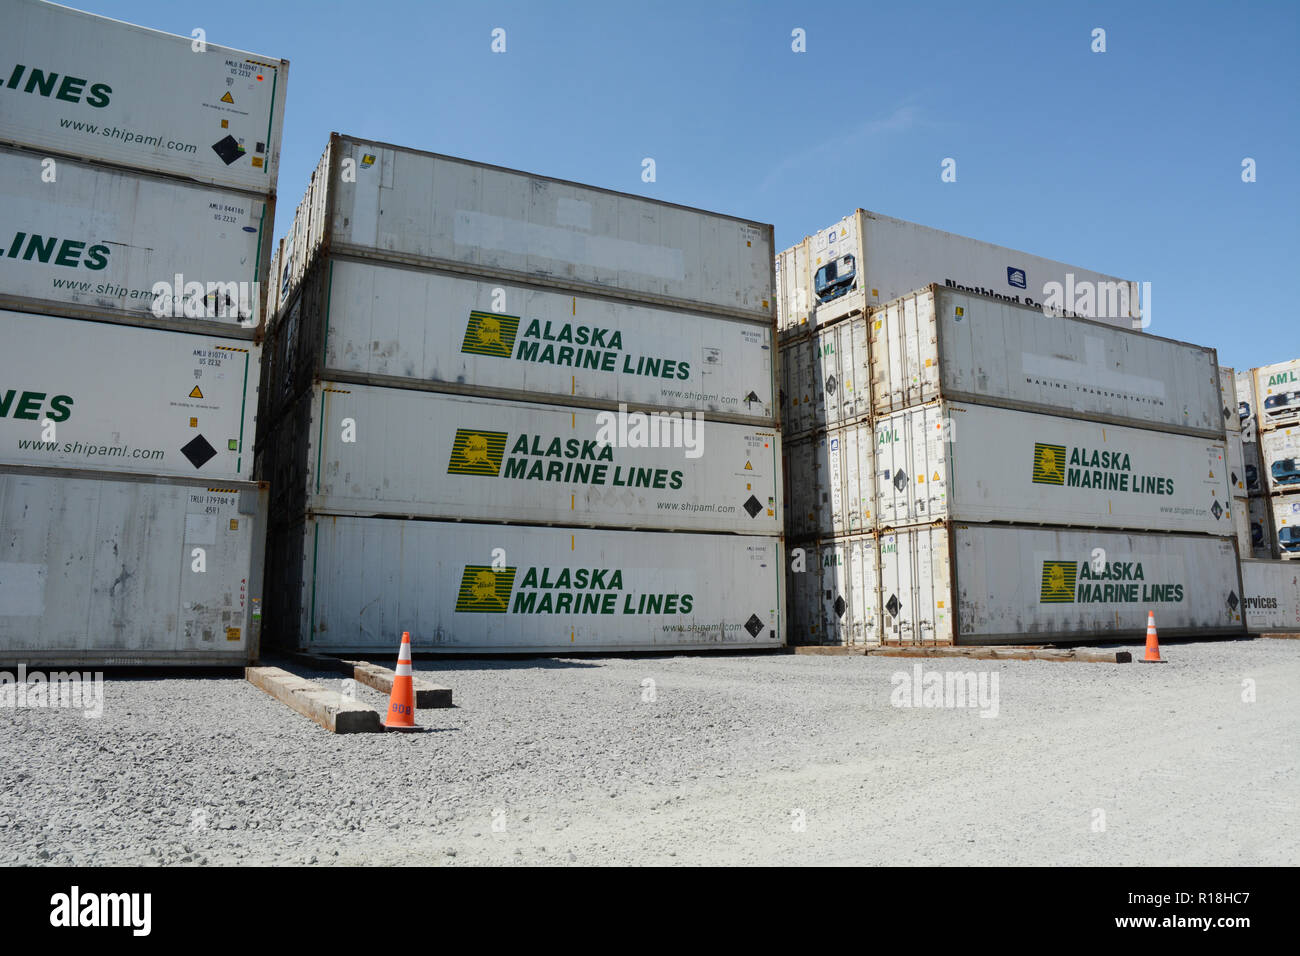 A stack of empty seafood shipping containers at a depot in the commercial fishing hub of Dutch Harbor, Unalaska Island, Alaska, United States. Stock Photo